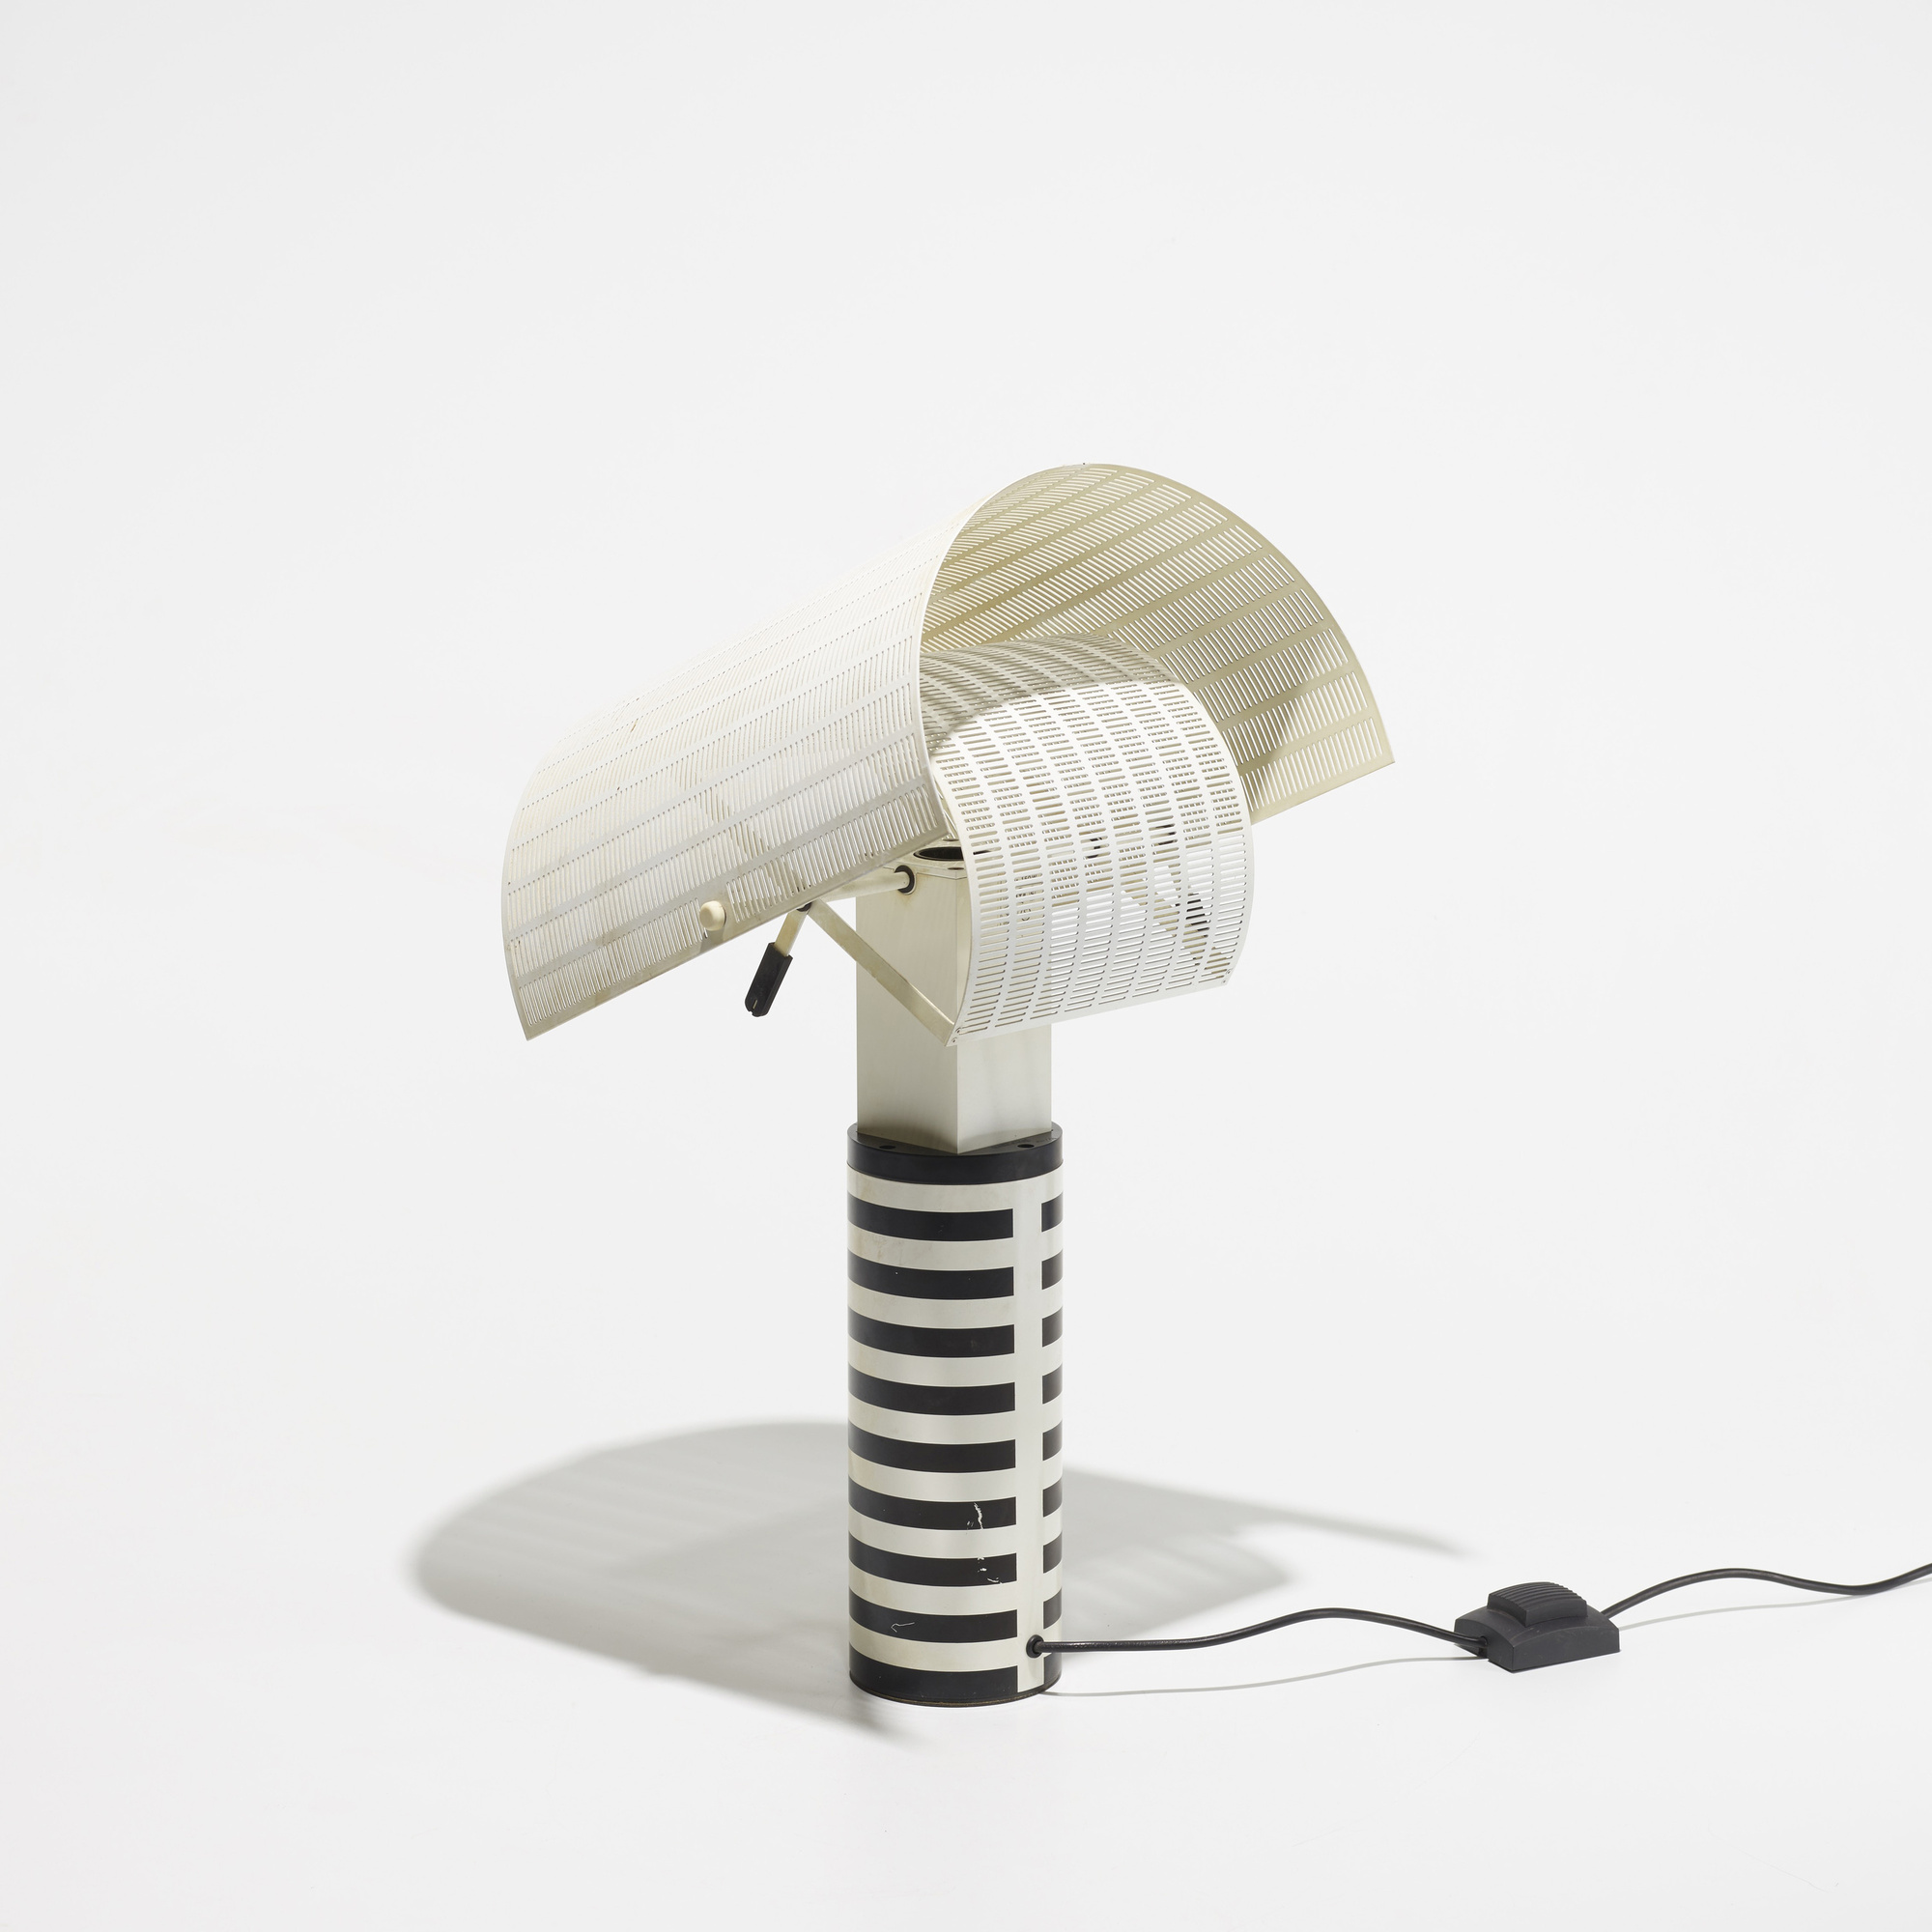 322: Mario Botta / Shogun table lamp (2 of 2)